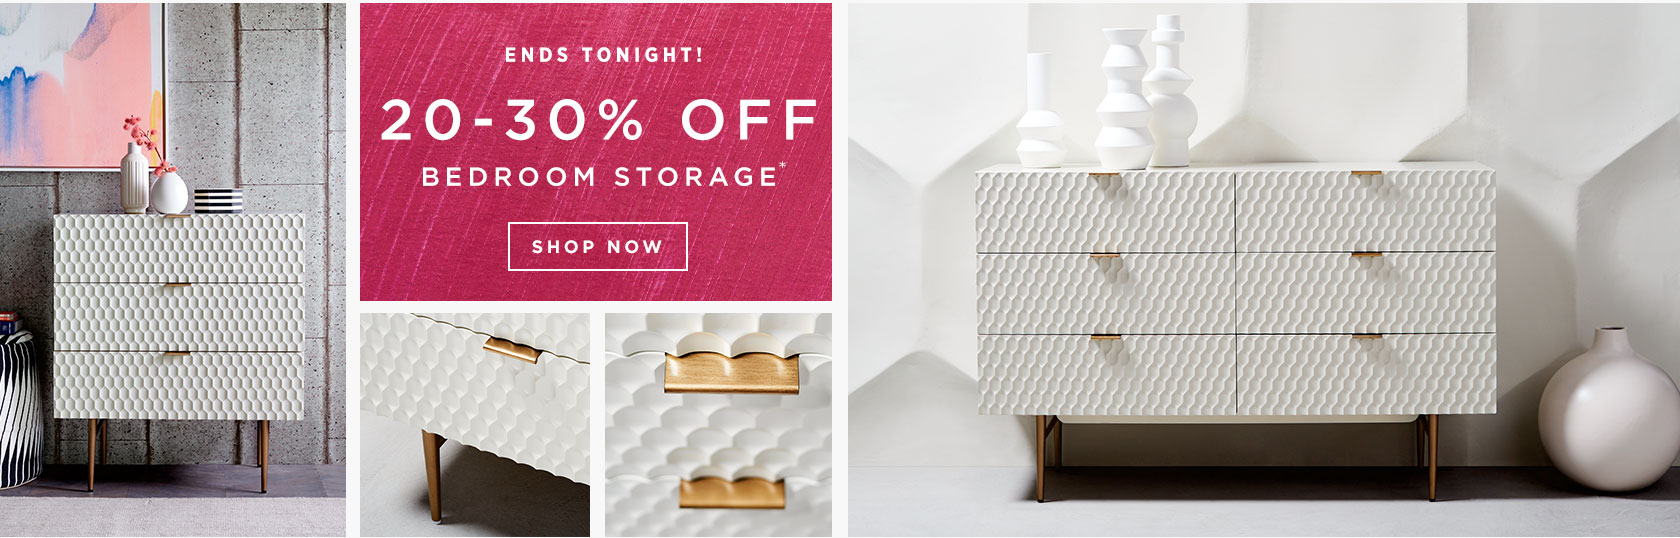 Ends Tonight! 20-30% Off Bedroom Storage